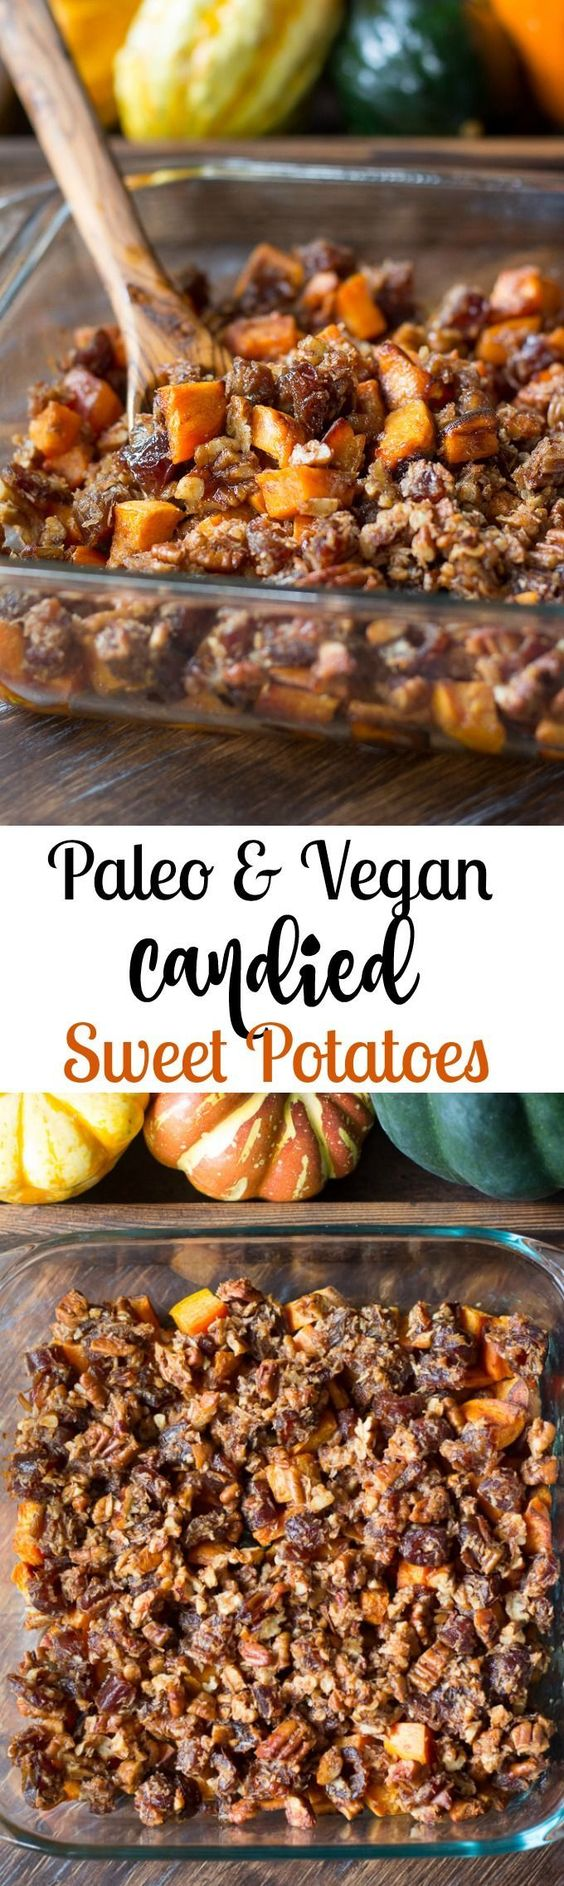 candied-sweet-potatoes-paleo-vegan